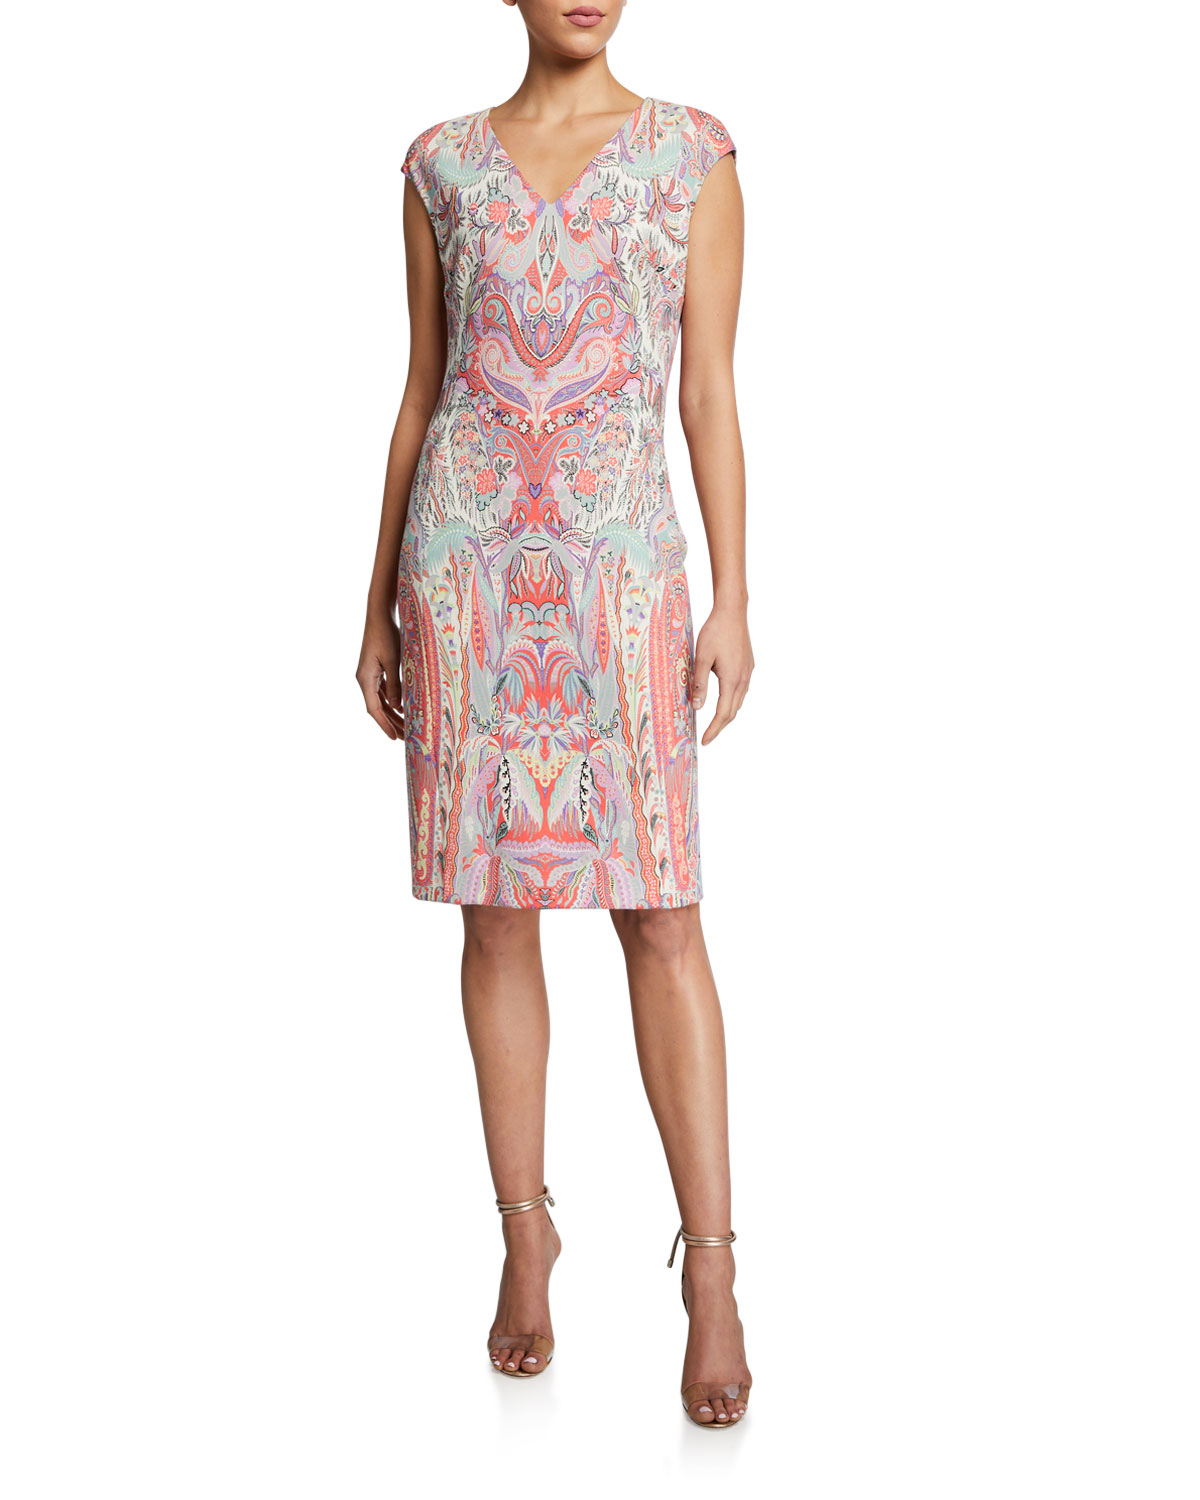 Etro Swirled Paisley Cap-Sleeve Jersey Dress